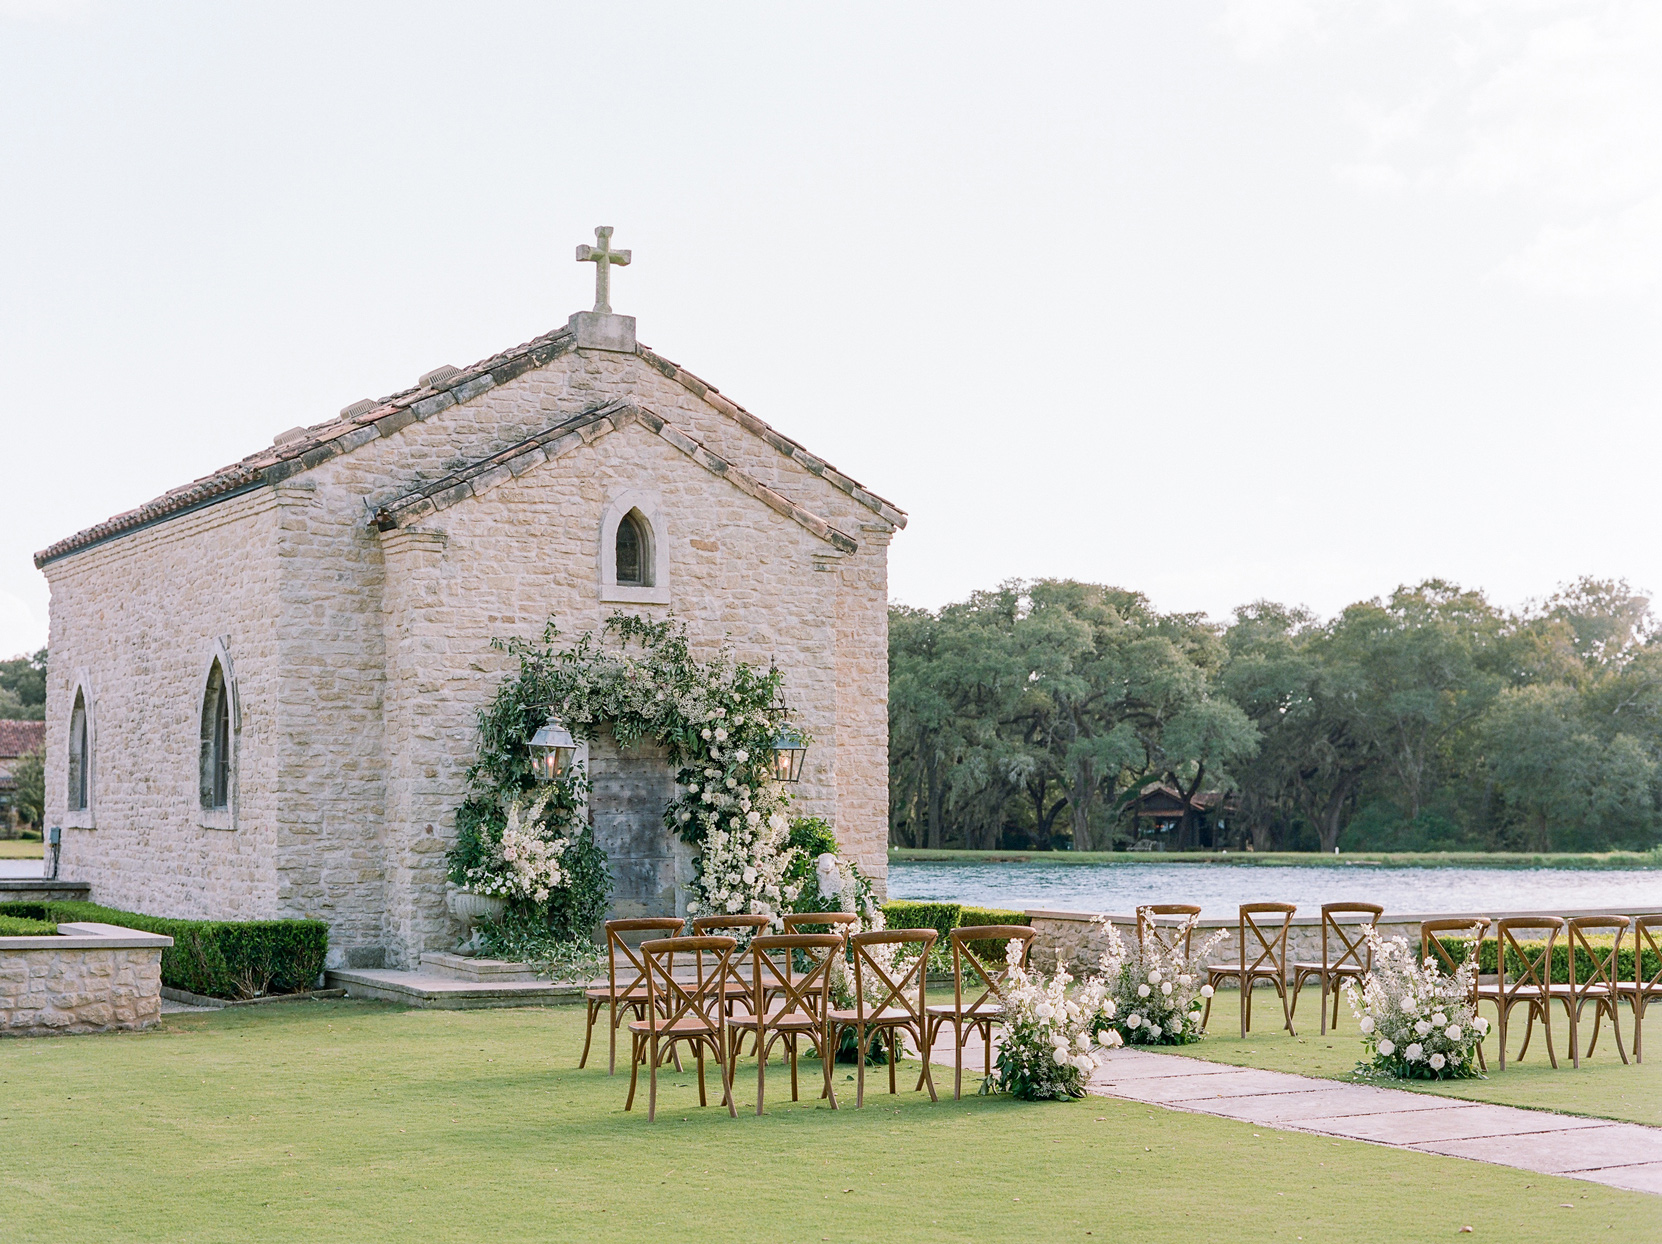 outdoor wedding setup with rows of chairs and a floral archway